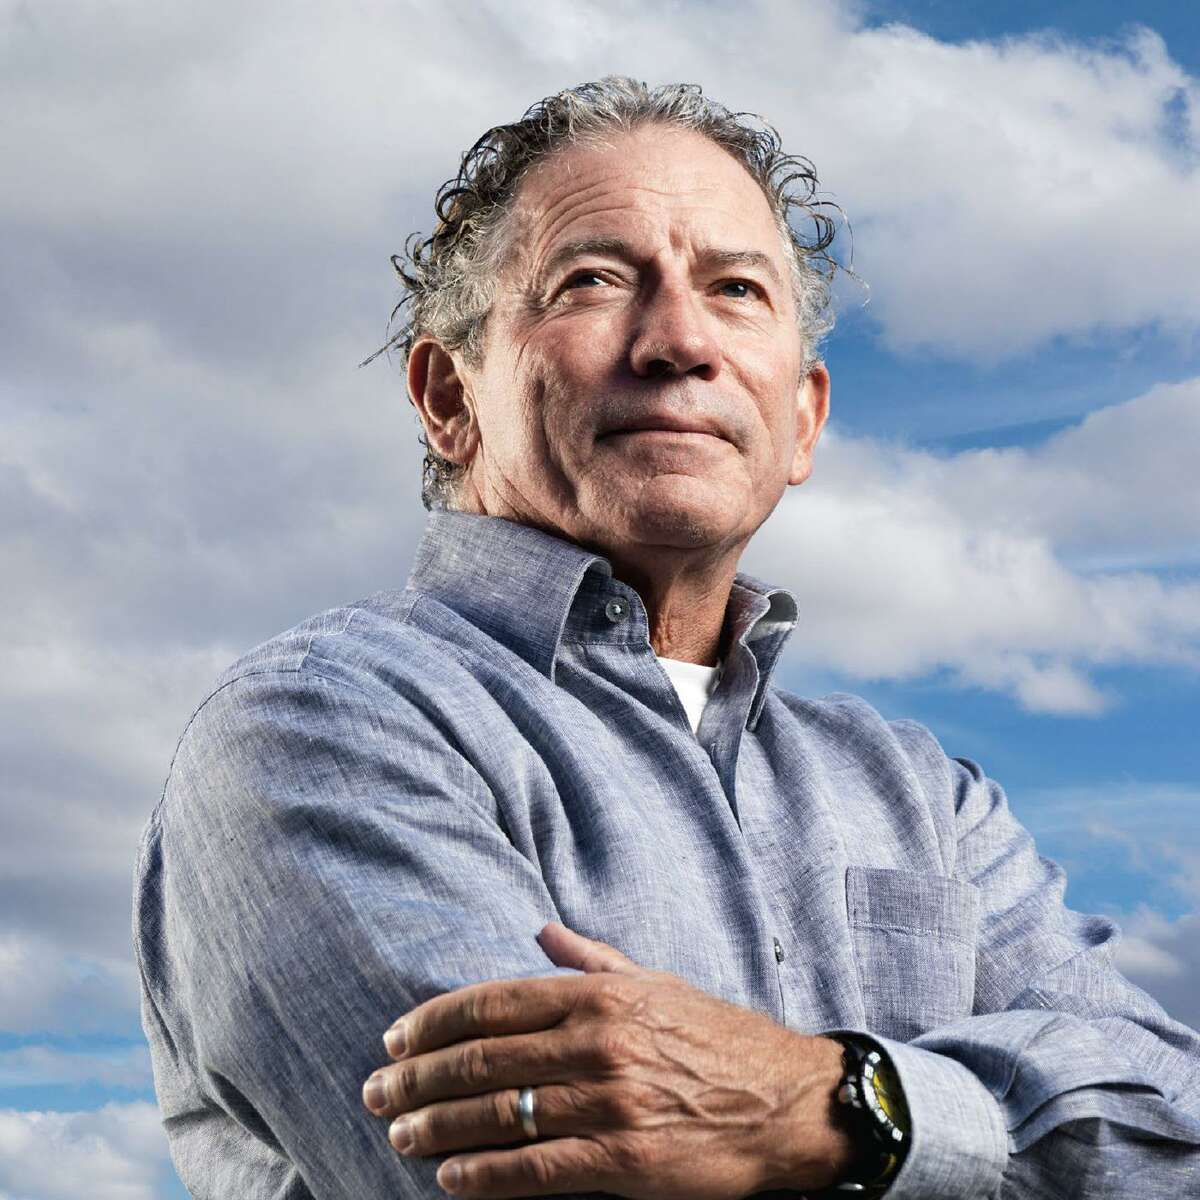 Tom Siebel is founder, chairman and CEO of the Silicon Valley artificial inteligence company C3.ai. The software company signed a Tuesday, November 19, 2019 agreement with Houston oilfield service company Baker Hughes and tech giant Microsoft to boost adoption of artificial intelligence by the oil and natural gas industry.